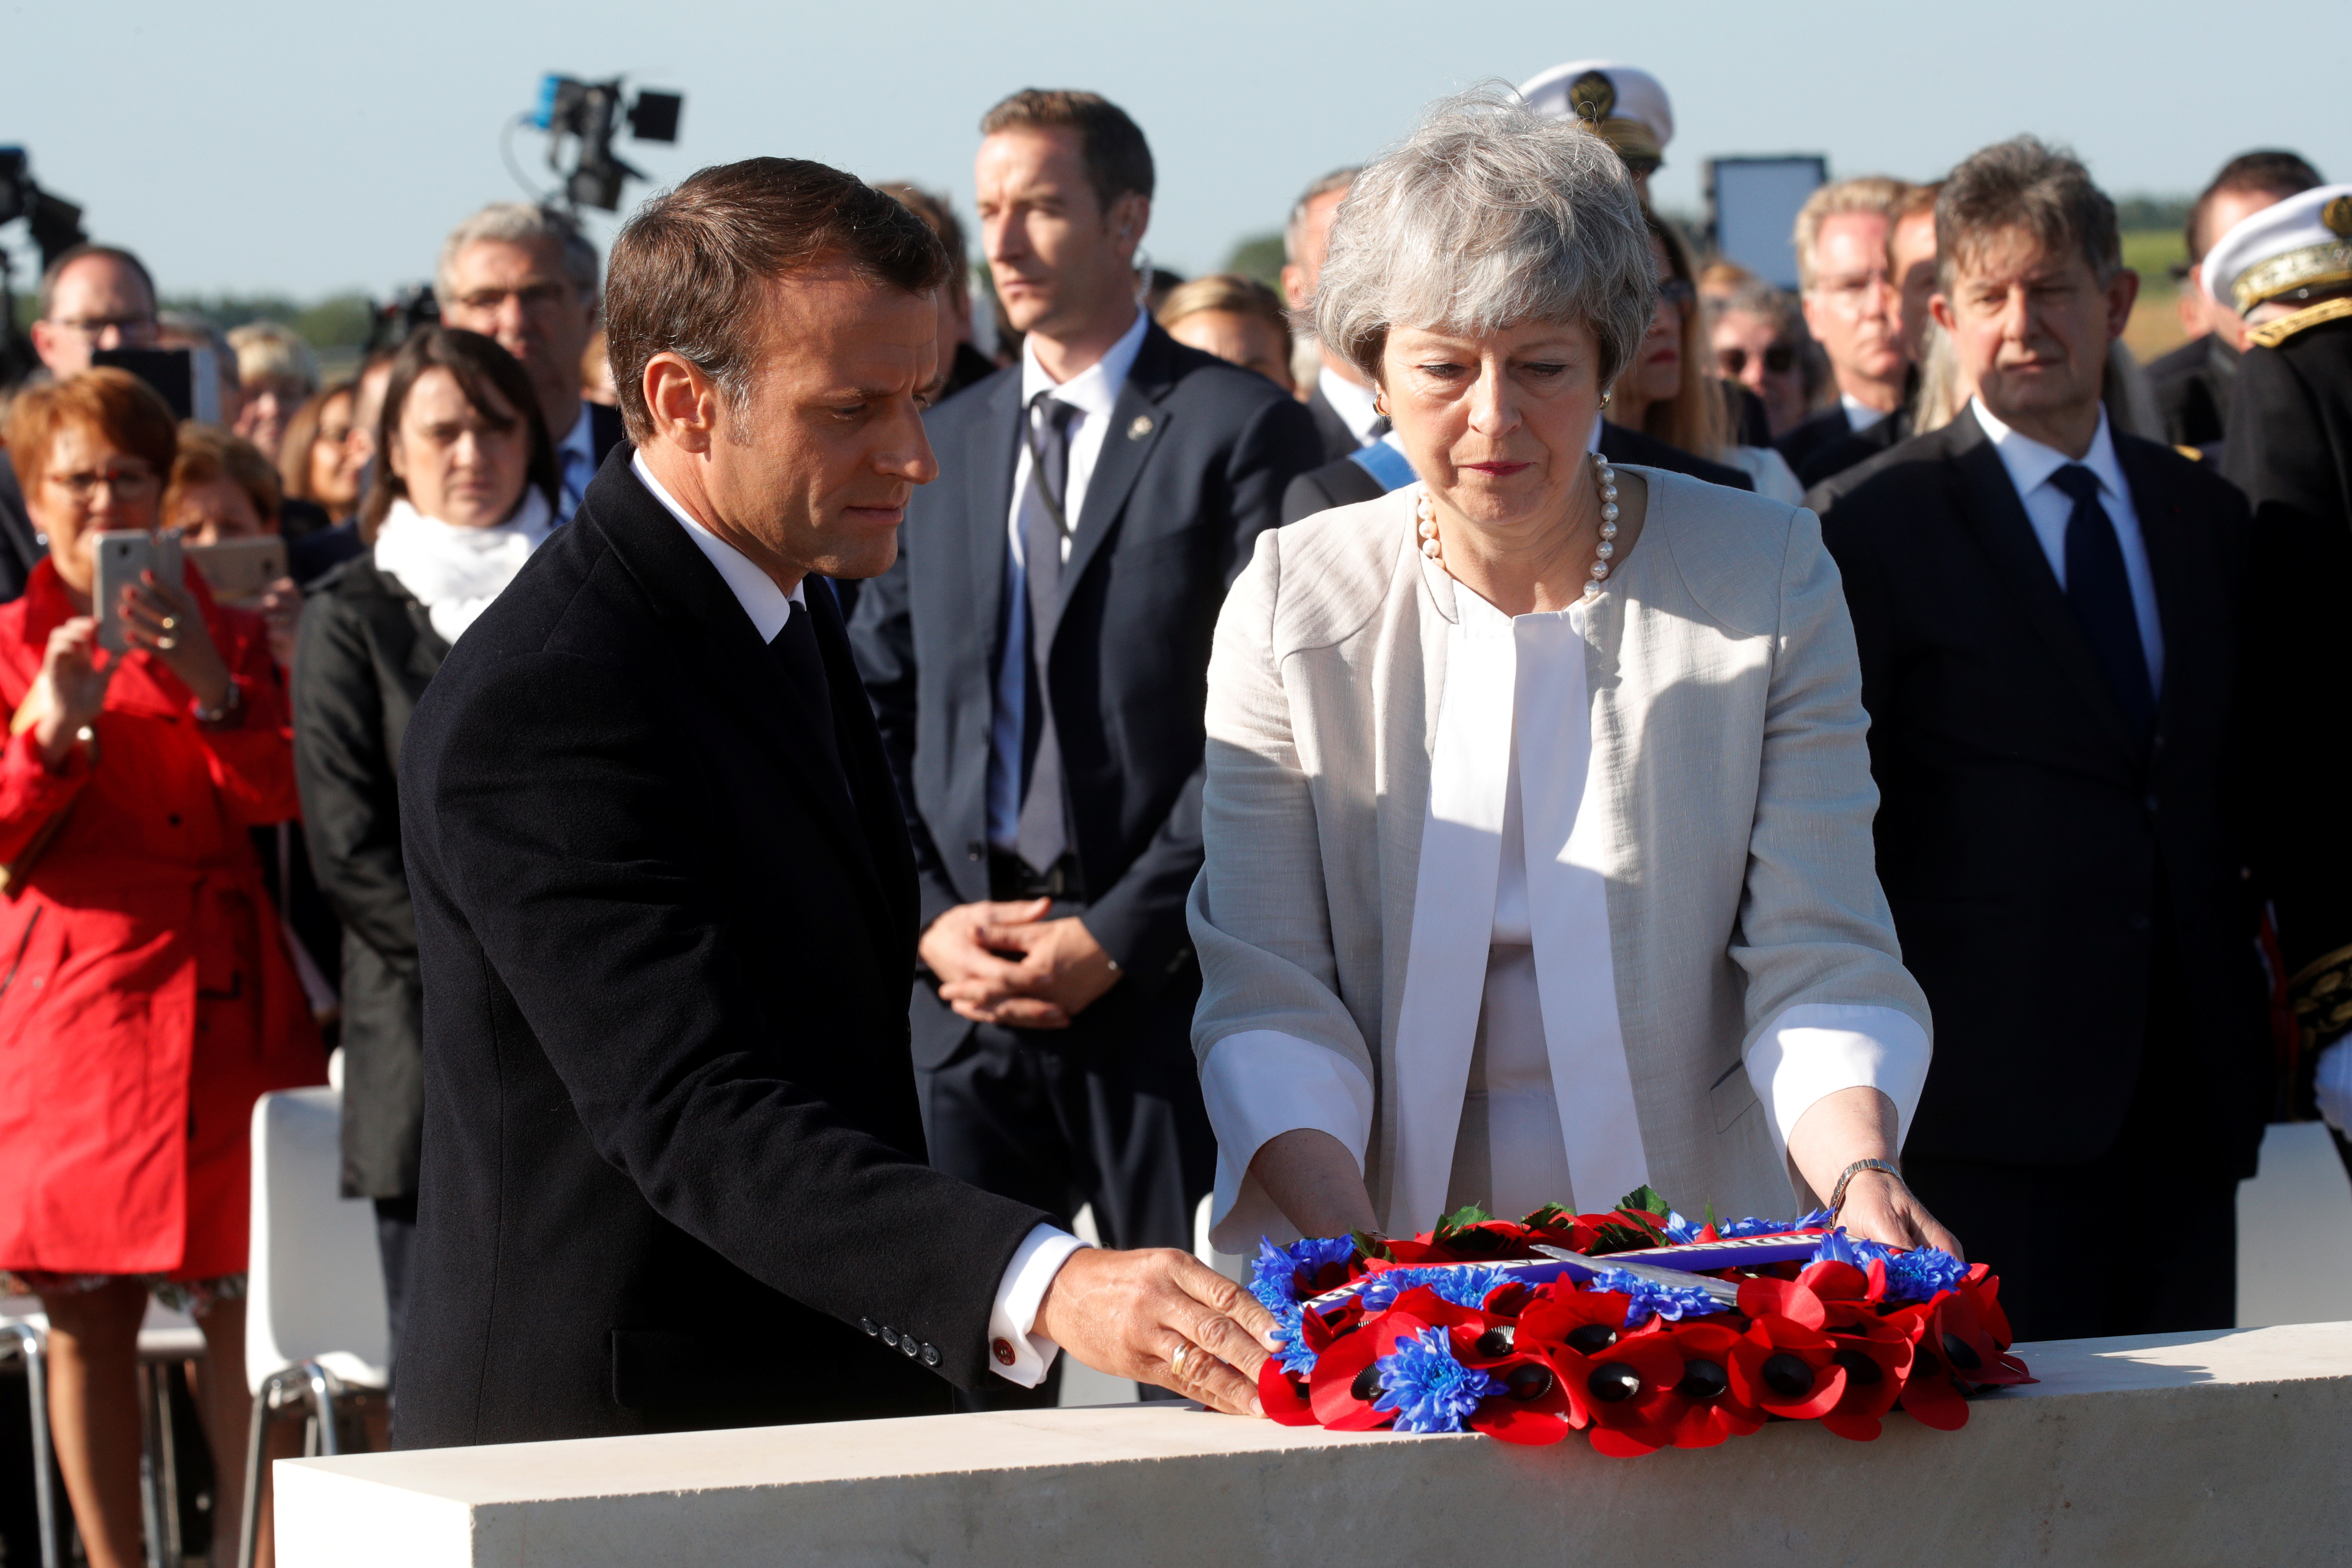 French President Emmanuel Macron and British Prime Minister Theresa May lay a wreath of flowers at the commemorative first stone of a British memorial during a Franco-British ceremony in Ver-Sur-Mer as part of ceremonies to mark the 75th anniversary of D-Day landings in Normandy, France, June 6, 2019. REUTERS/Philippe Wojazer/Pool